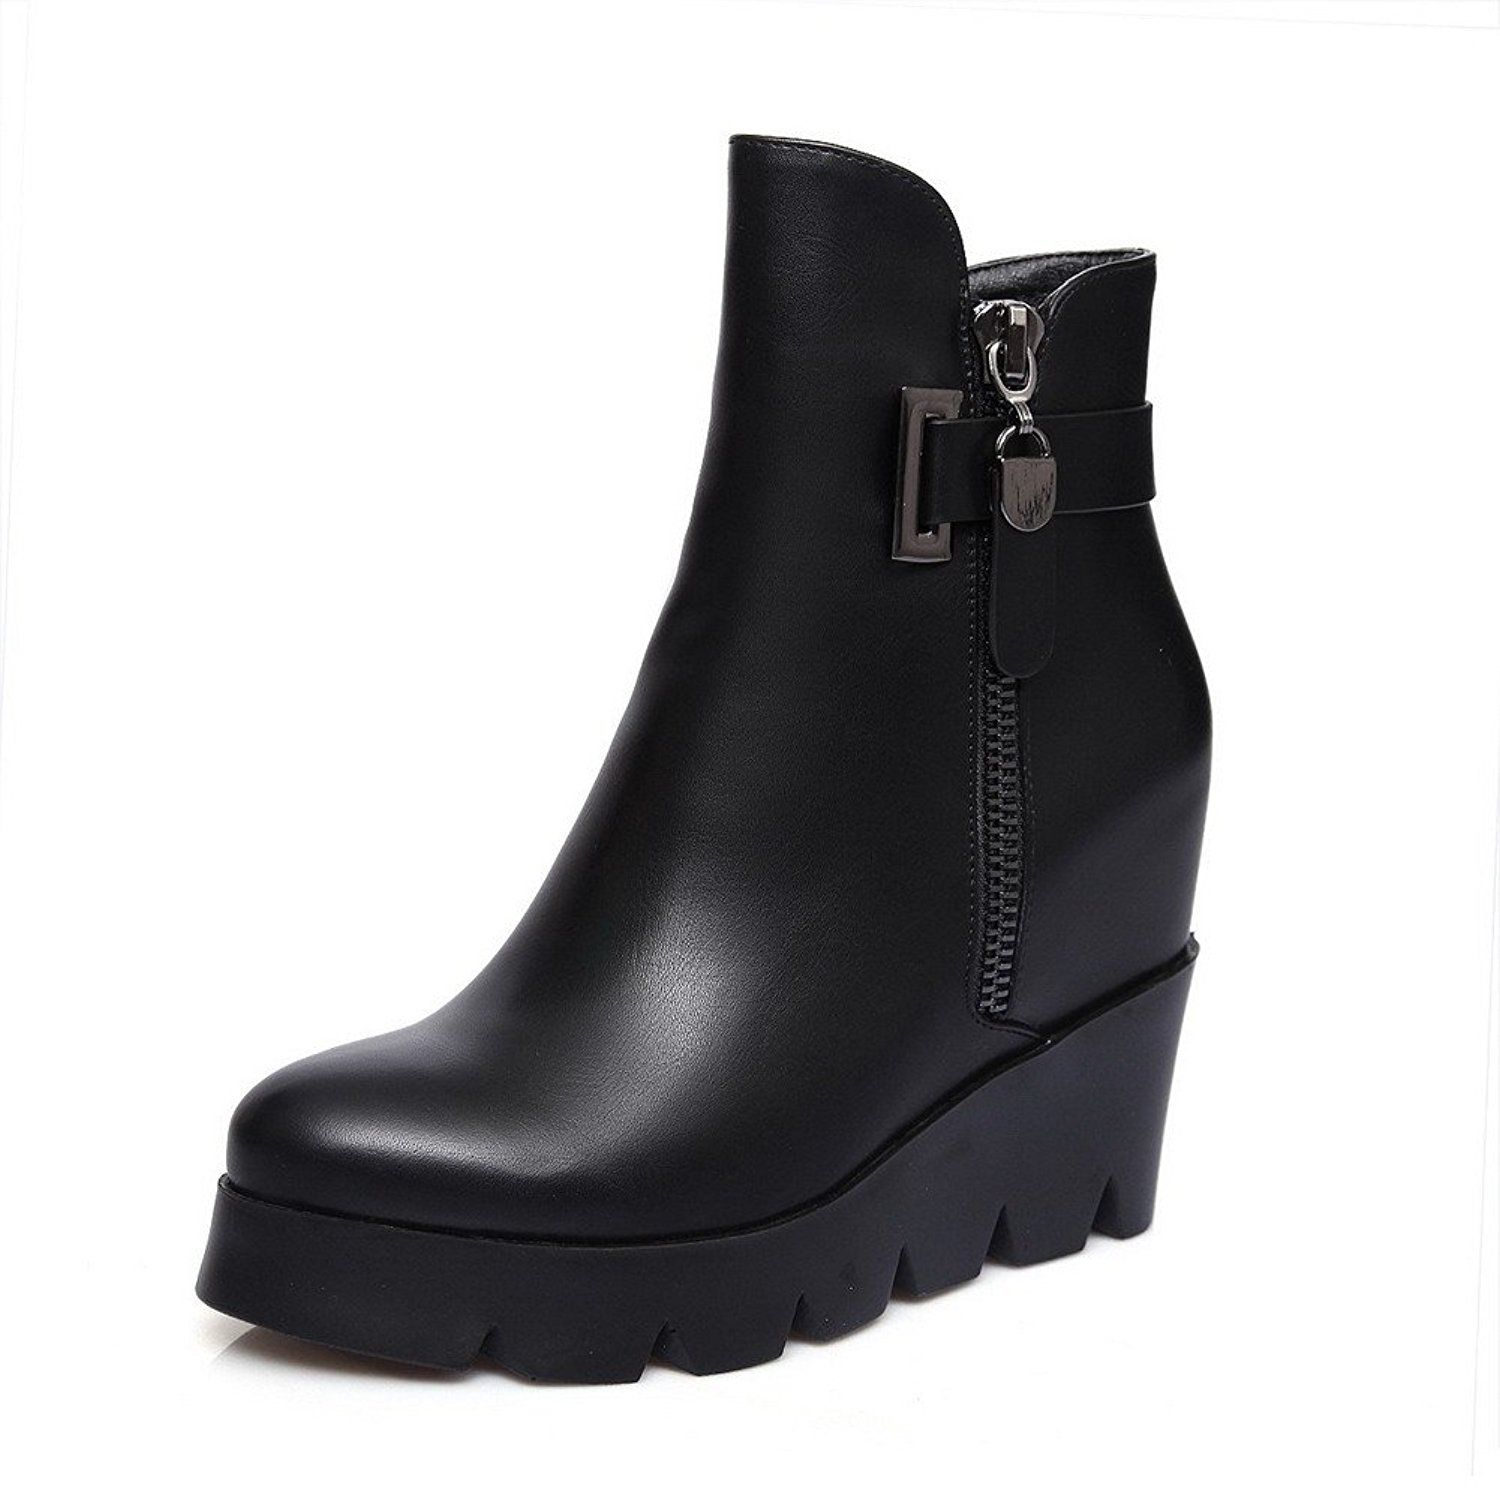 Women's Solid Blend Materials Boots with Zippers and Thread